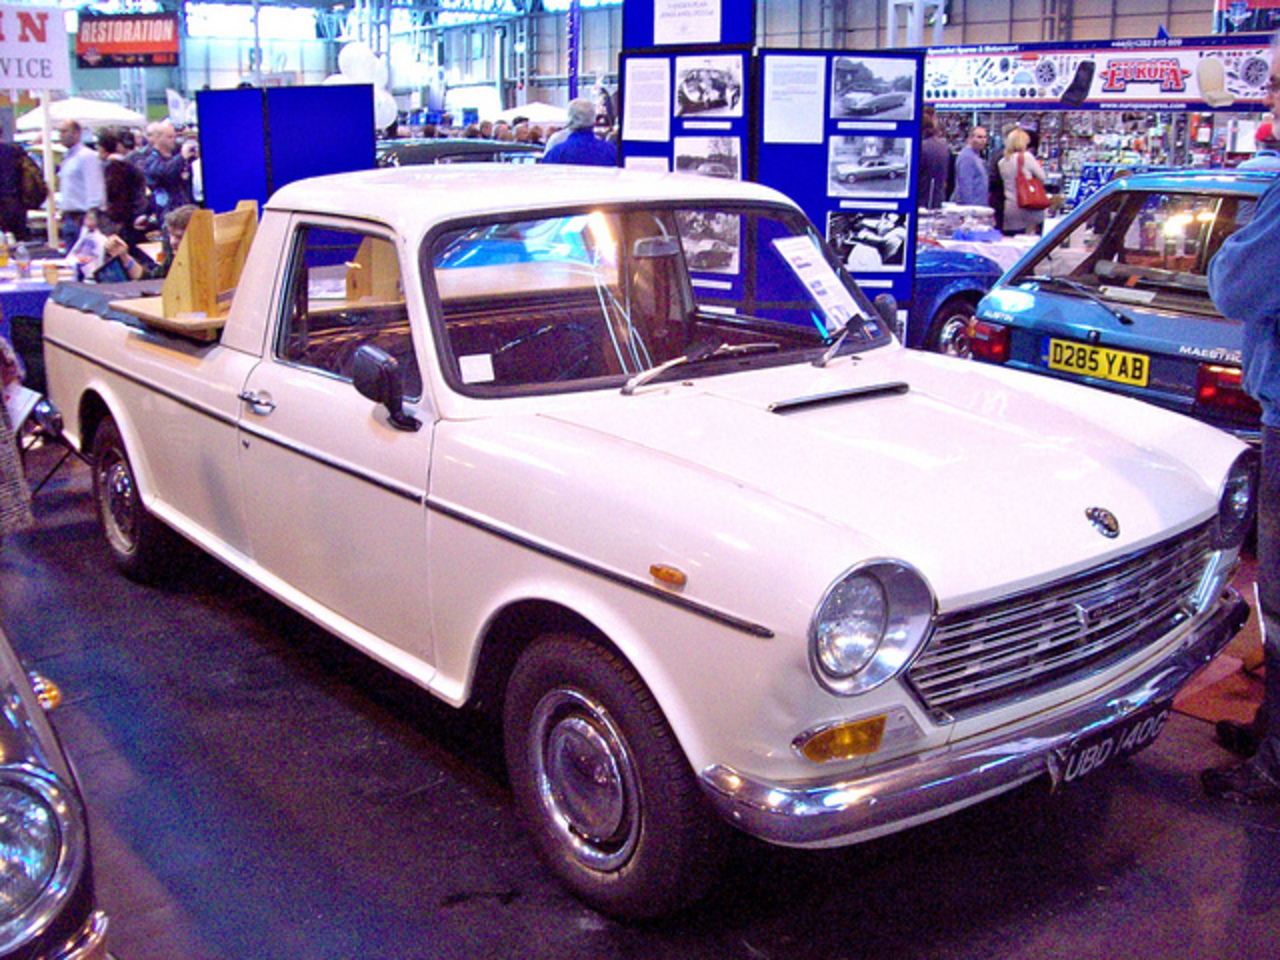 45 Austin 1800 Pick Up (1969) | Flickr - Photo Sharing!